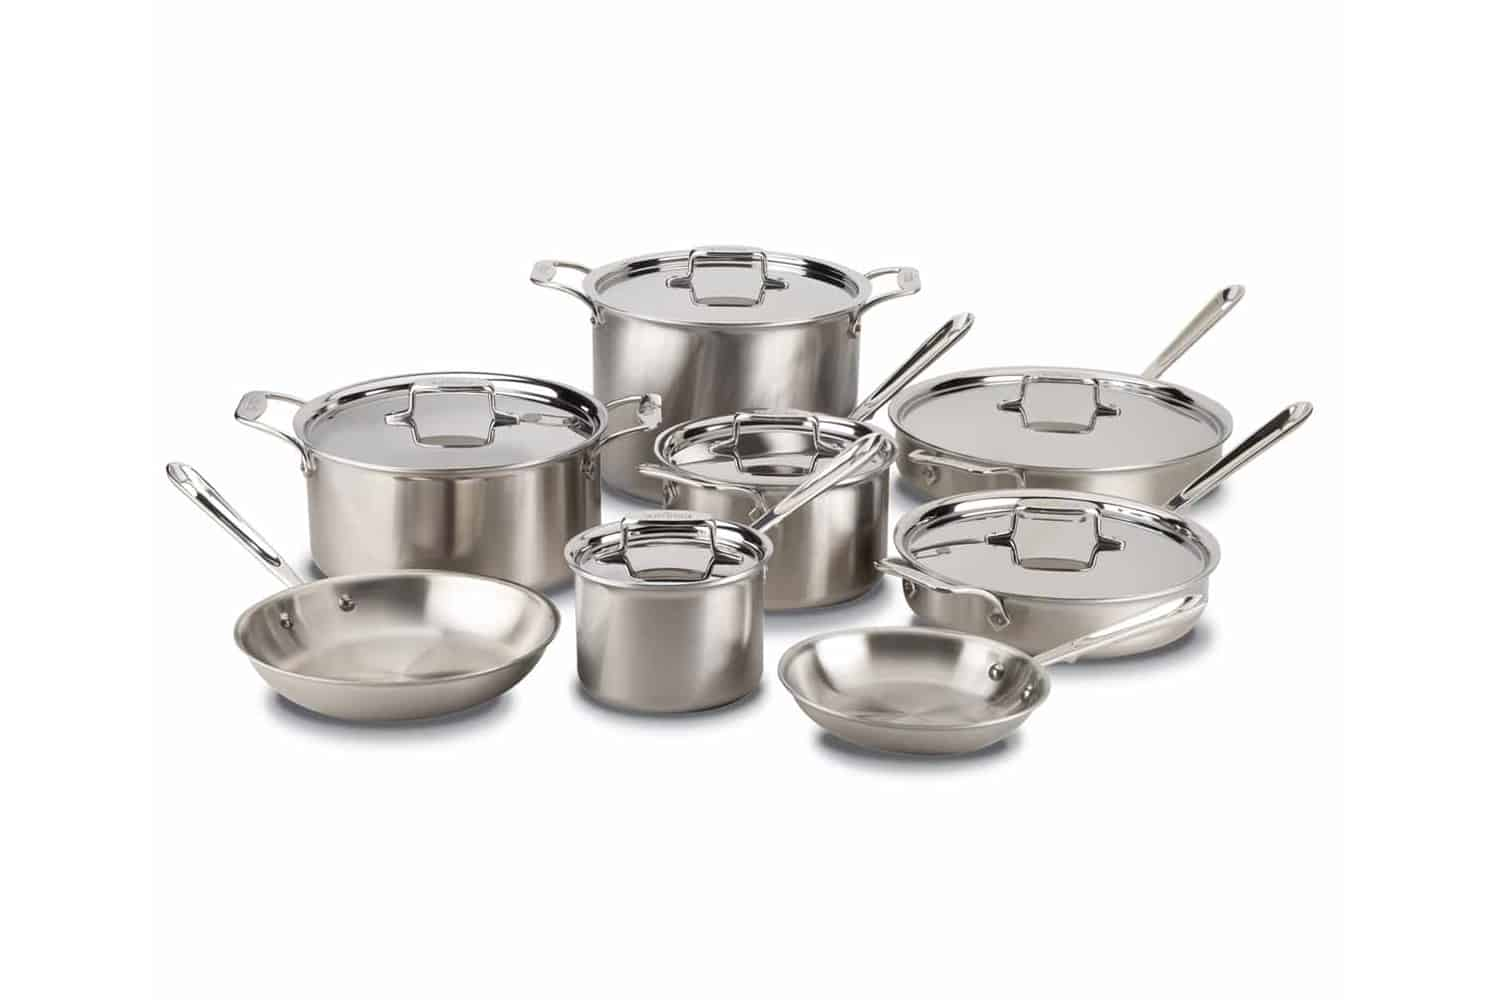 All-Clad Tri-Ply Stainless Steel vs. d5 Cookware Review